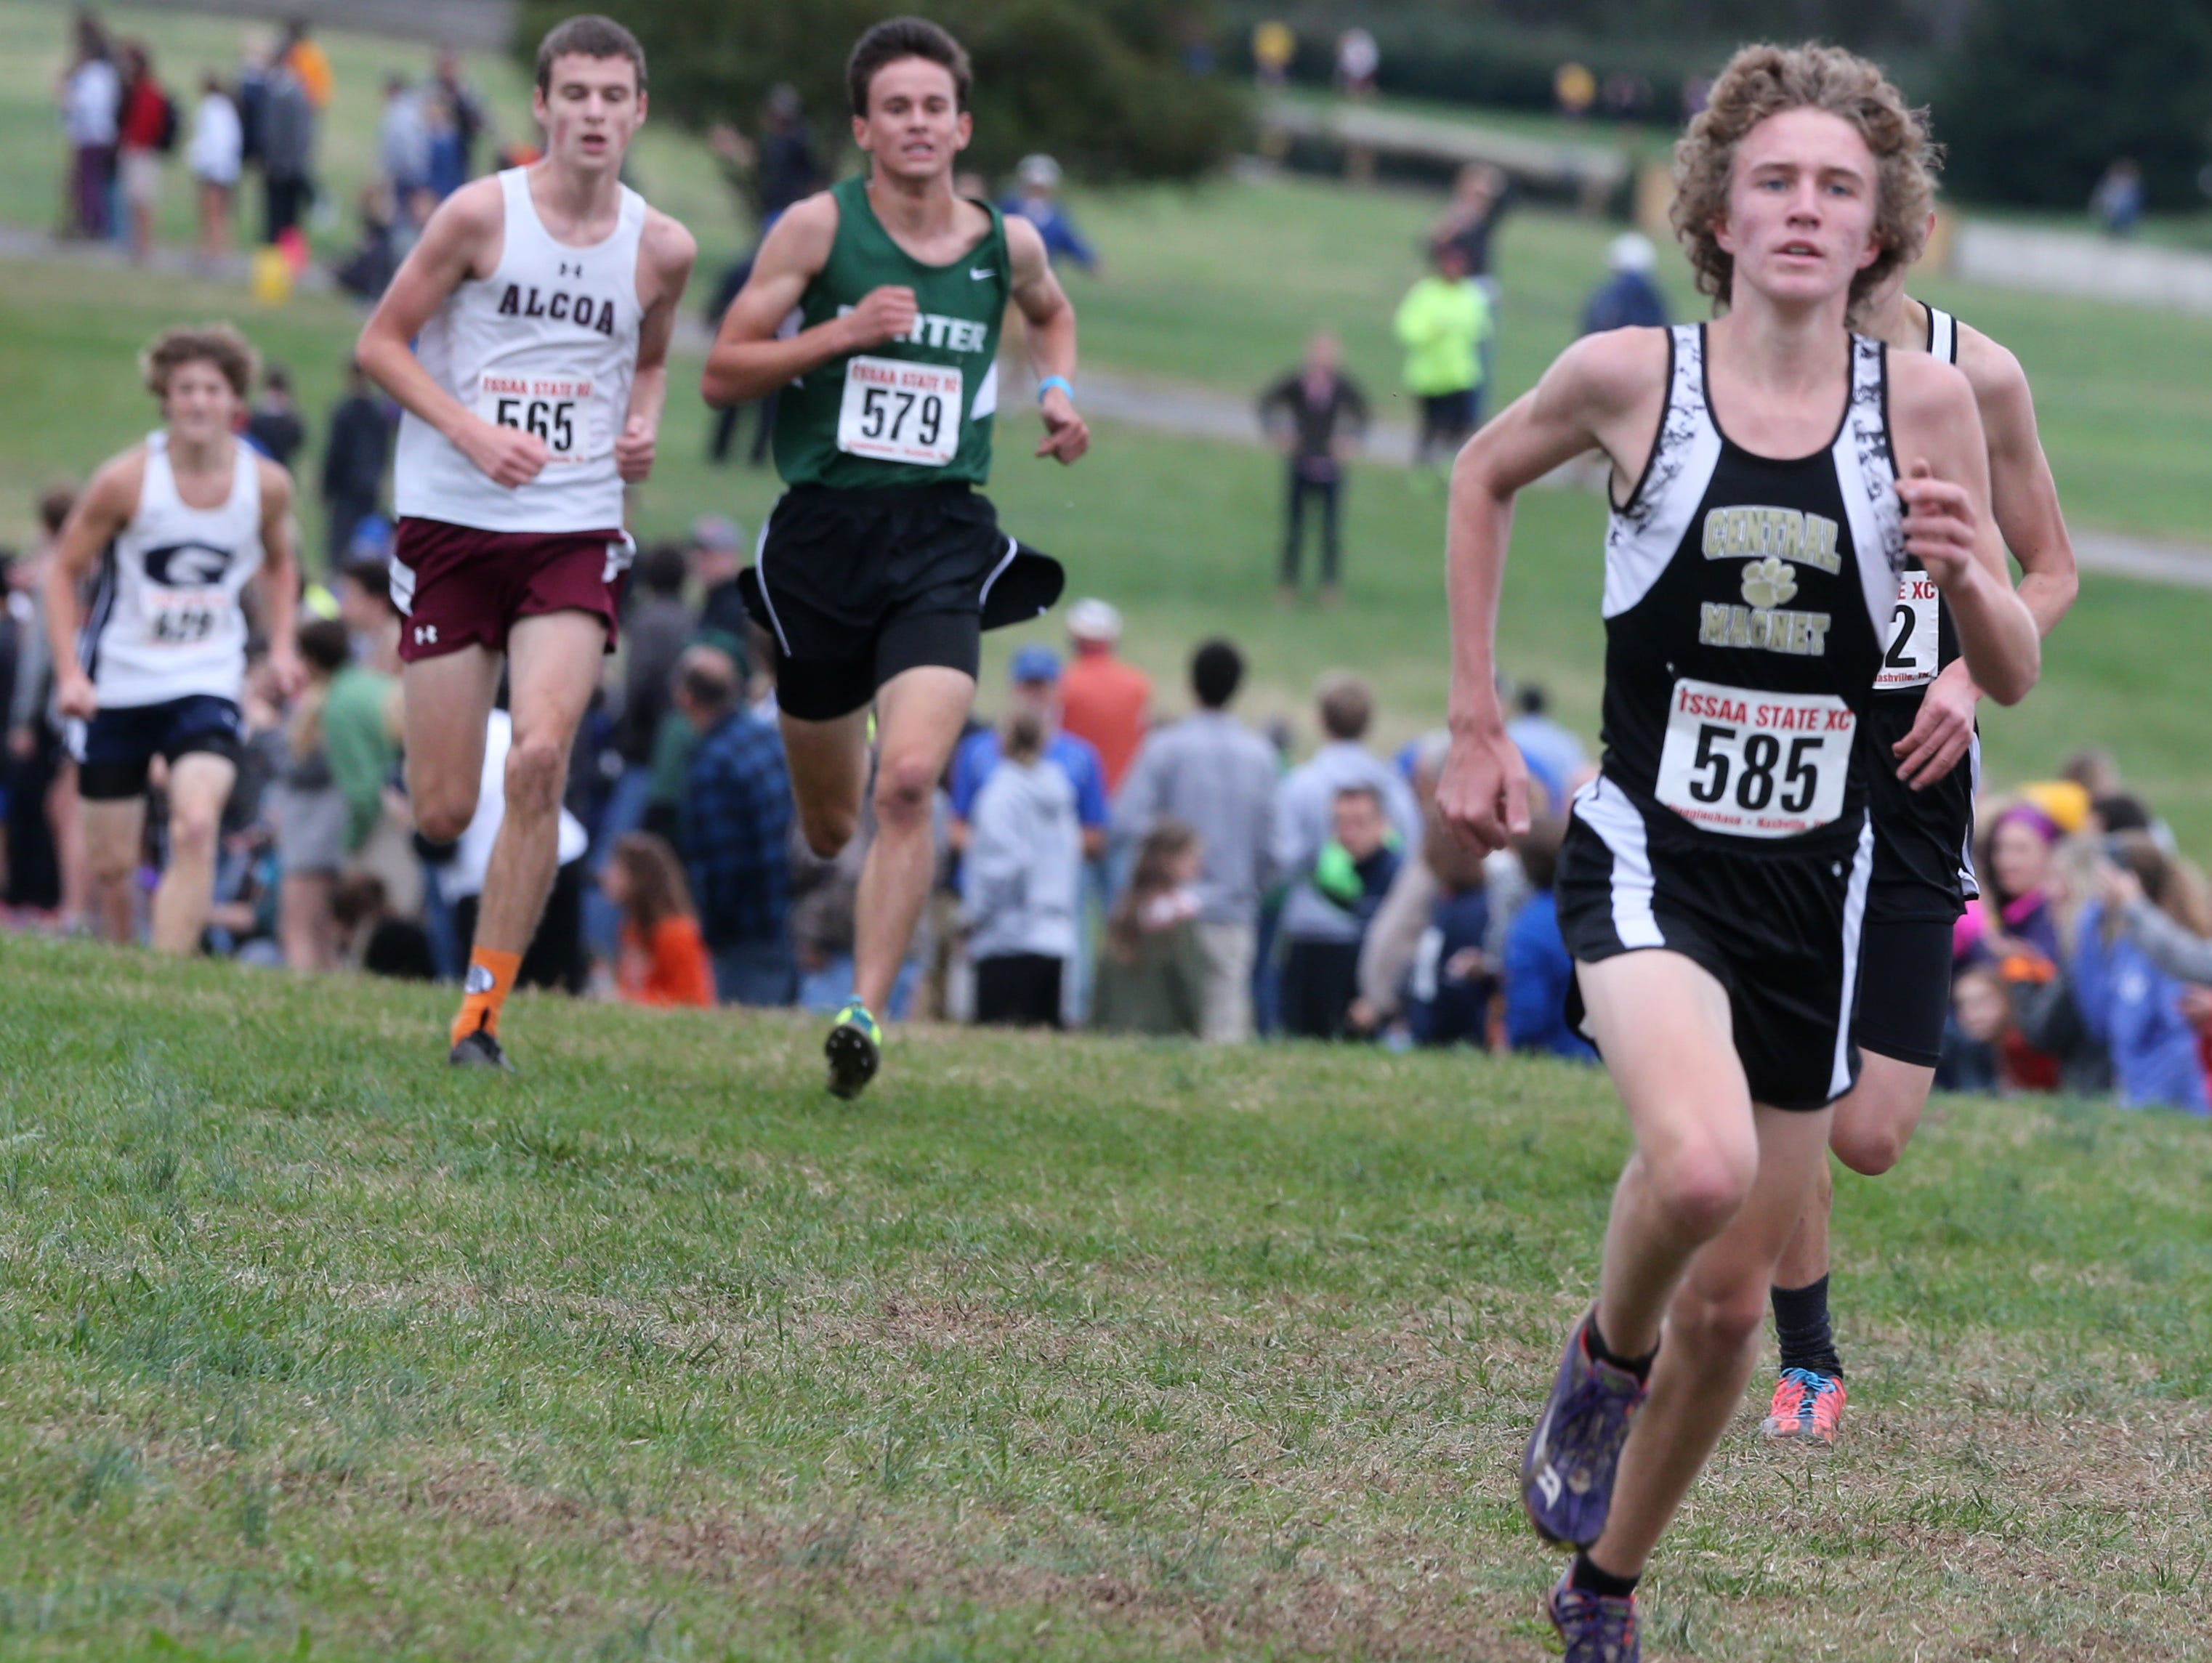 Central Magnet's Jordan Shirley placed seventh in the TSSAA Class A/AA state meet with a time of 17:03.80.